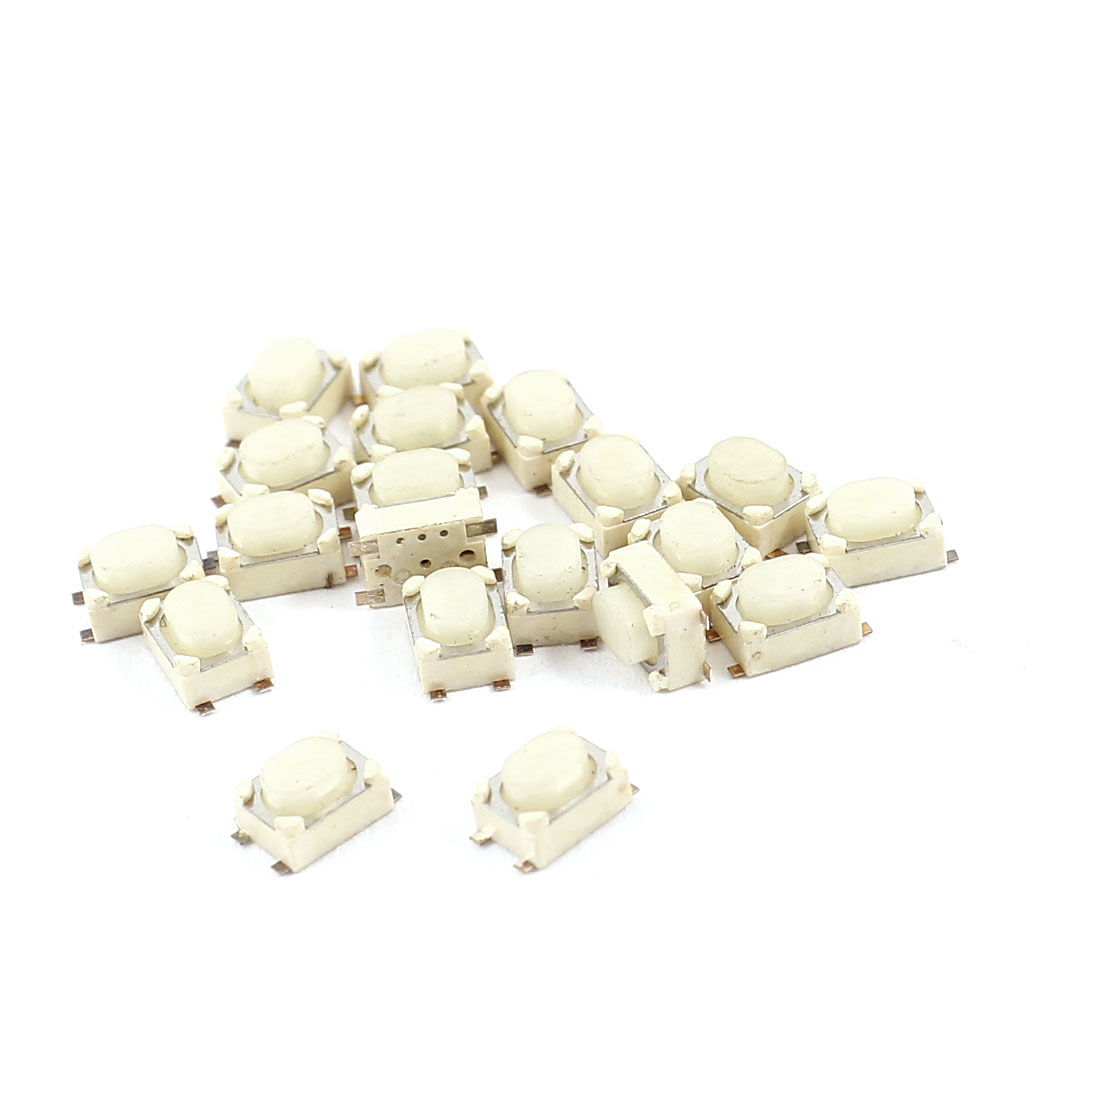 20pcs Momentary Push Button PCB SPST Tactile Tact Switch 4mmx3mmx2.5mm